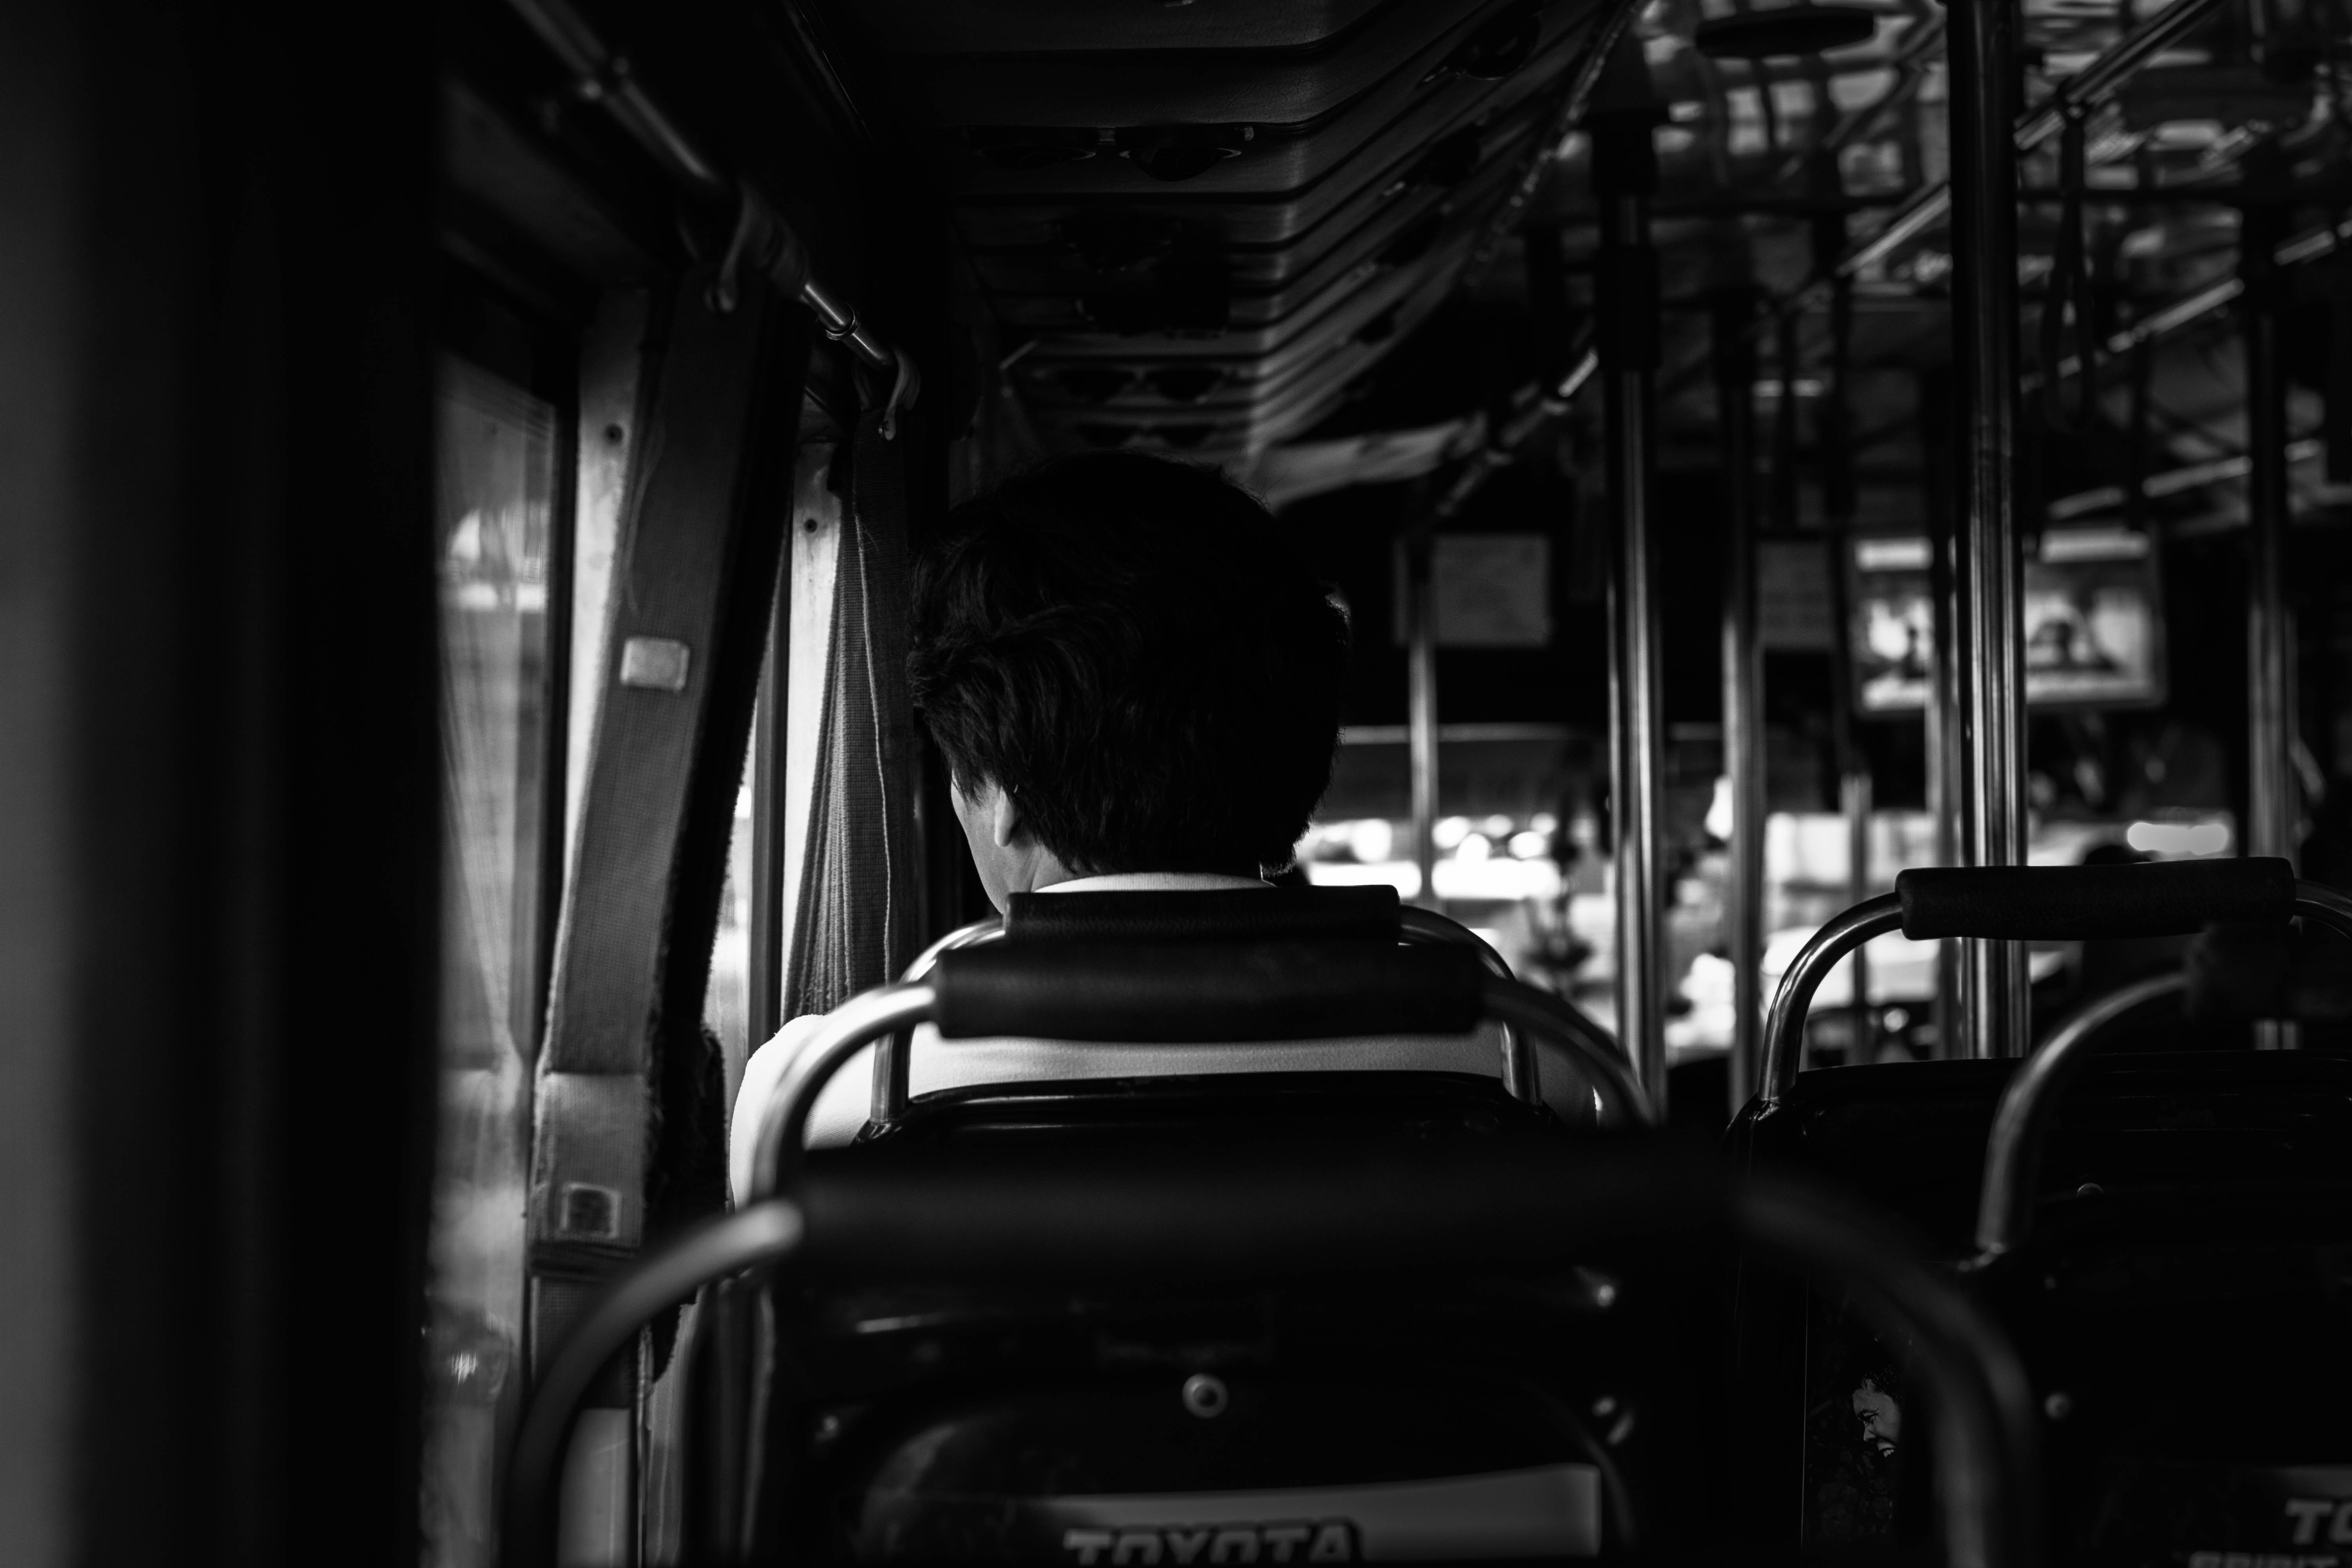 grayscale photography of of person sitting on car interior